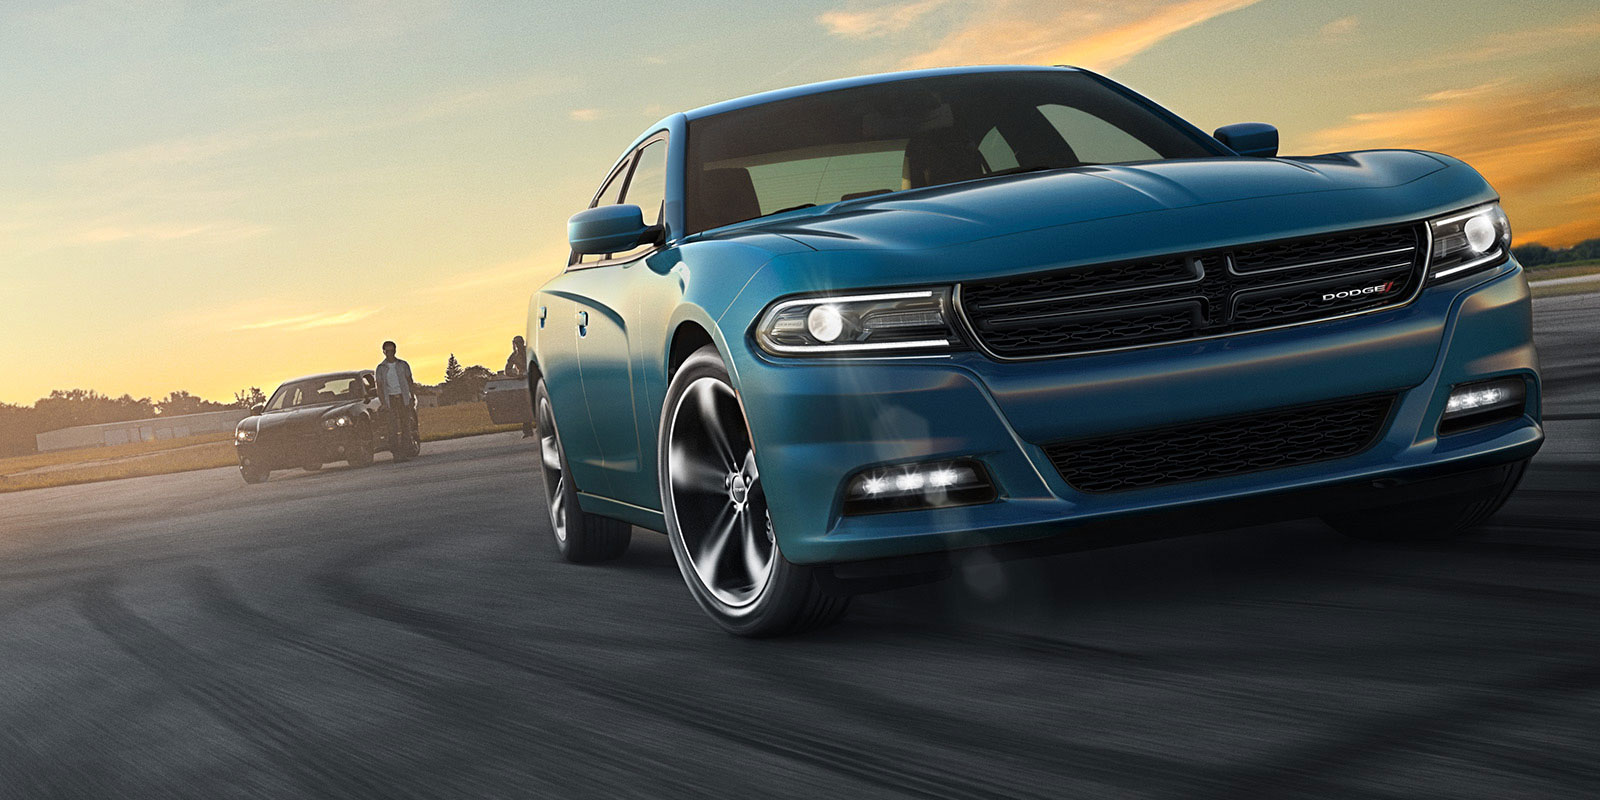 Dodge Charger Hellcat Lease >> New Dodge® Charger Pricing and Lease Offers - Austin, Texas